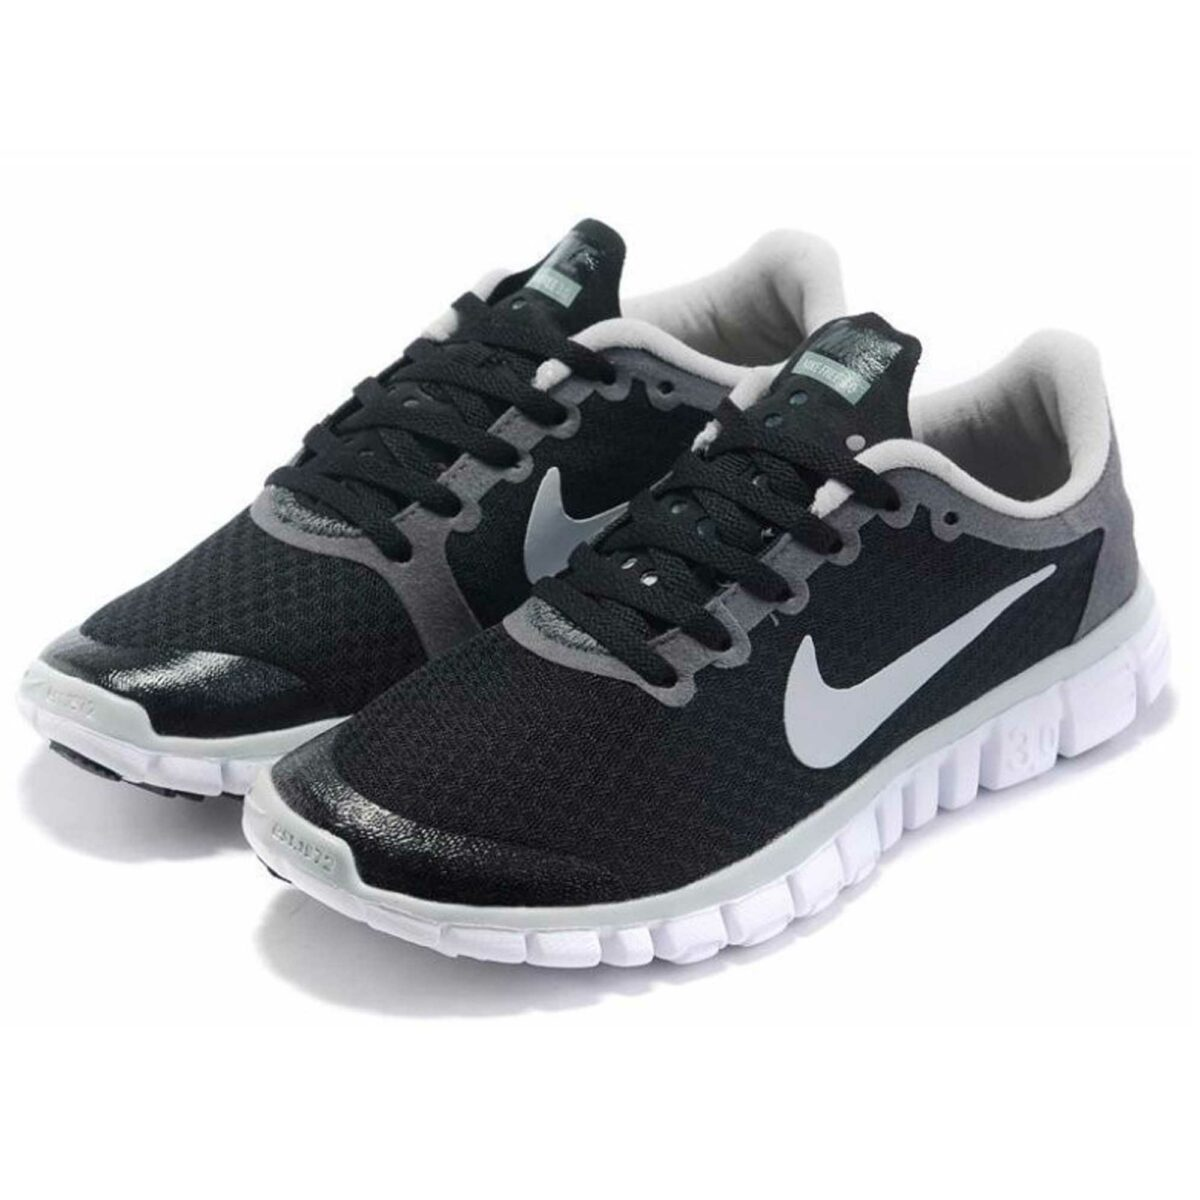 nike free 3.0.2 mens running shoes black grey 354574_001 купить